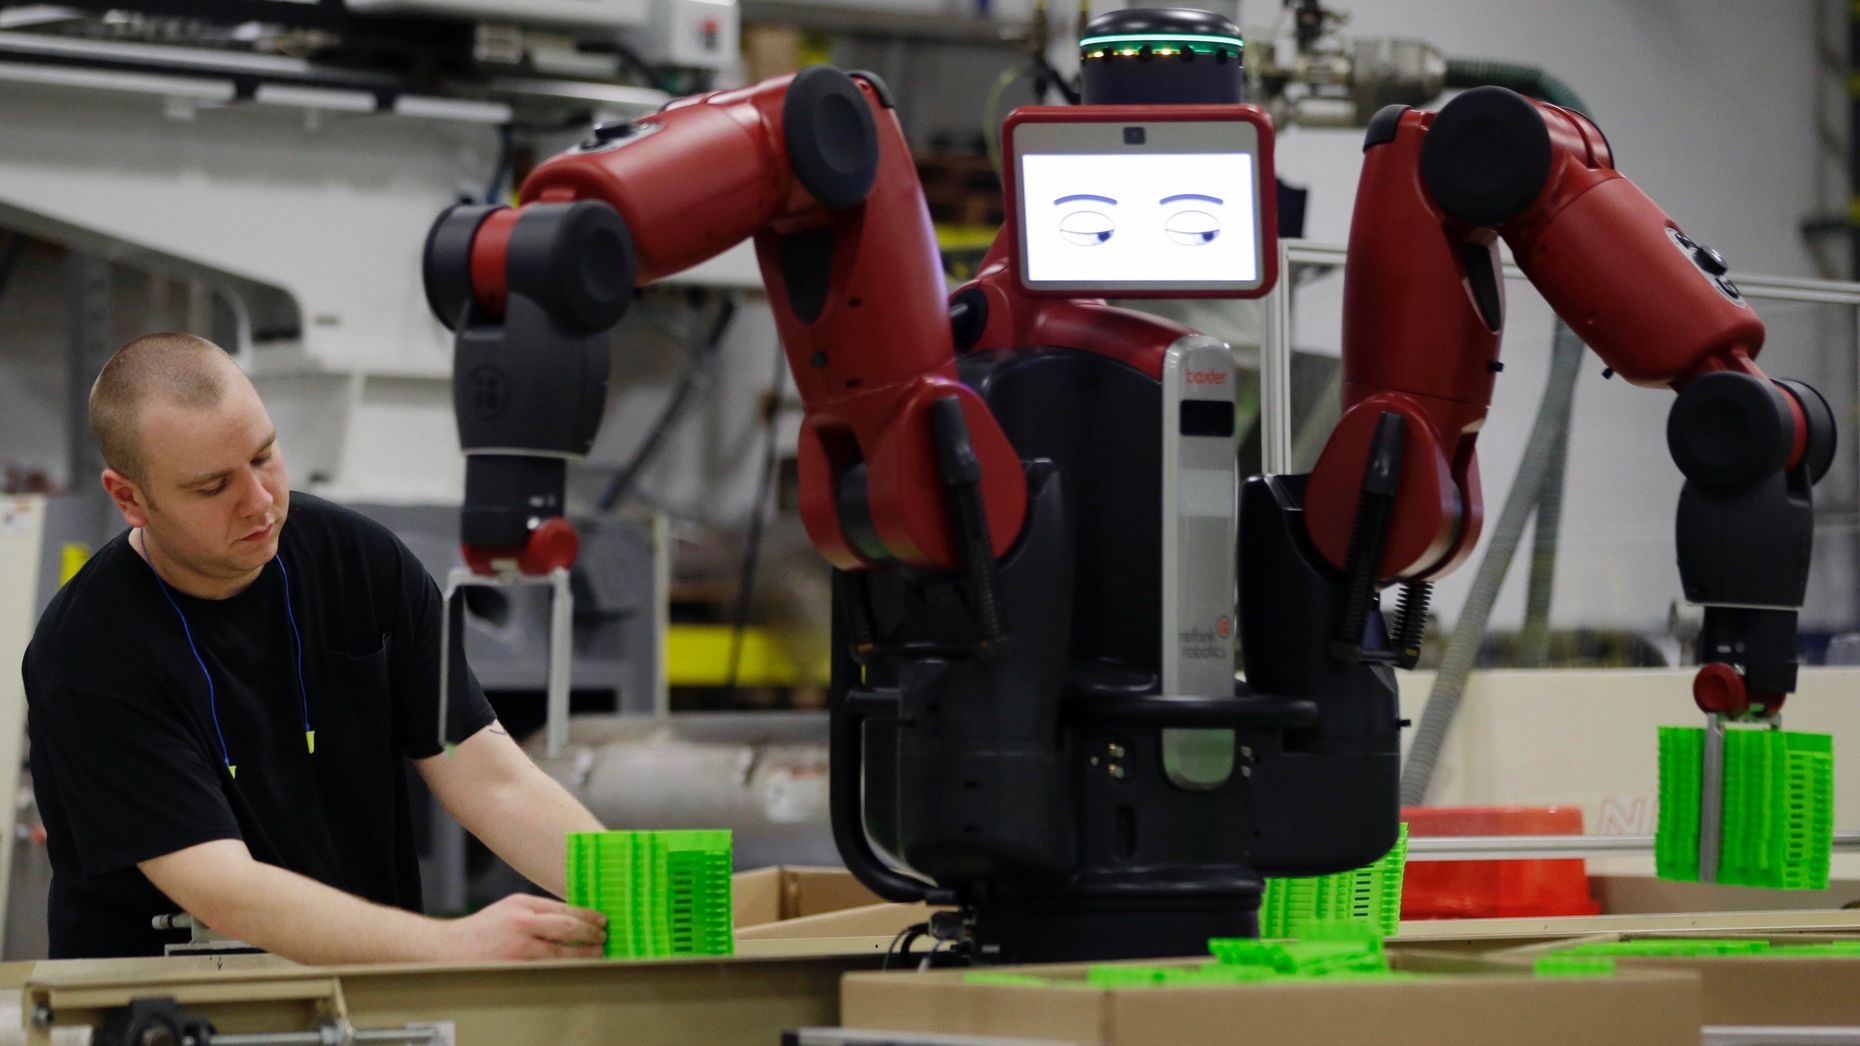 A technician works with Rethink's Baxter at The Rodon Group manufacturing facility in 2013. Photo by AP.